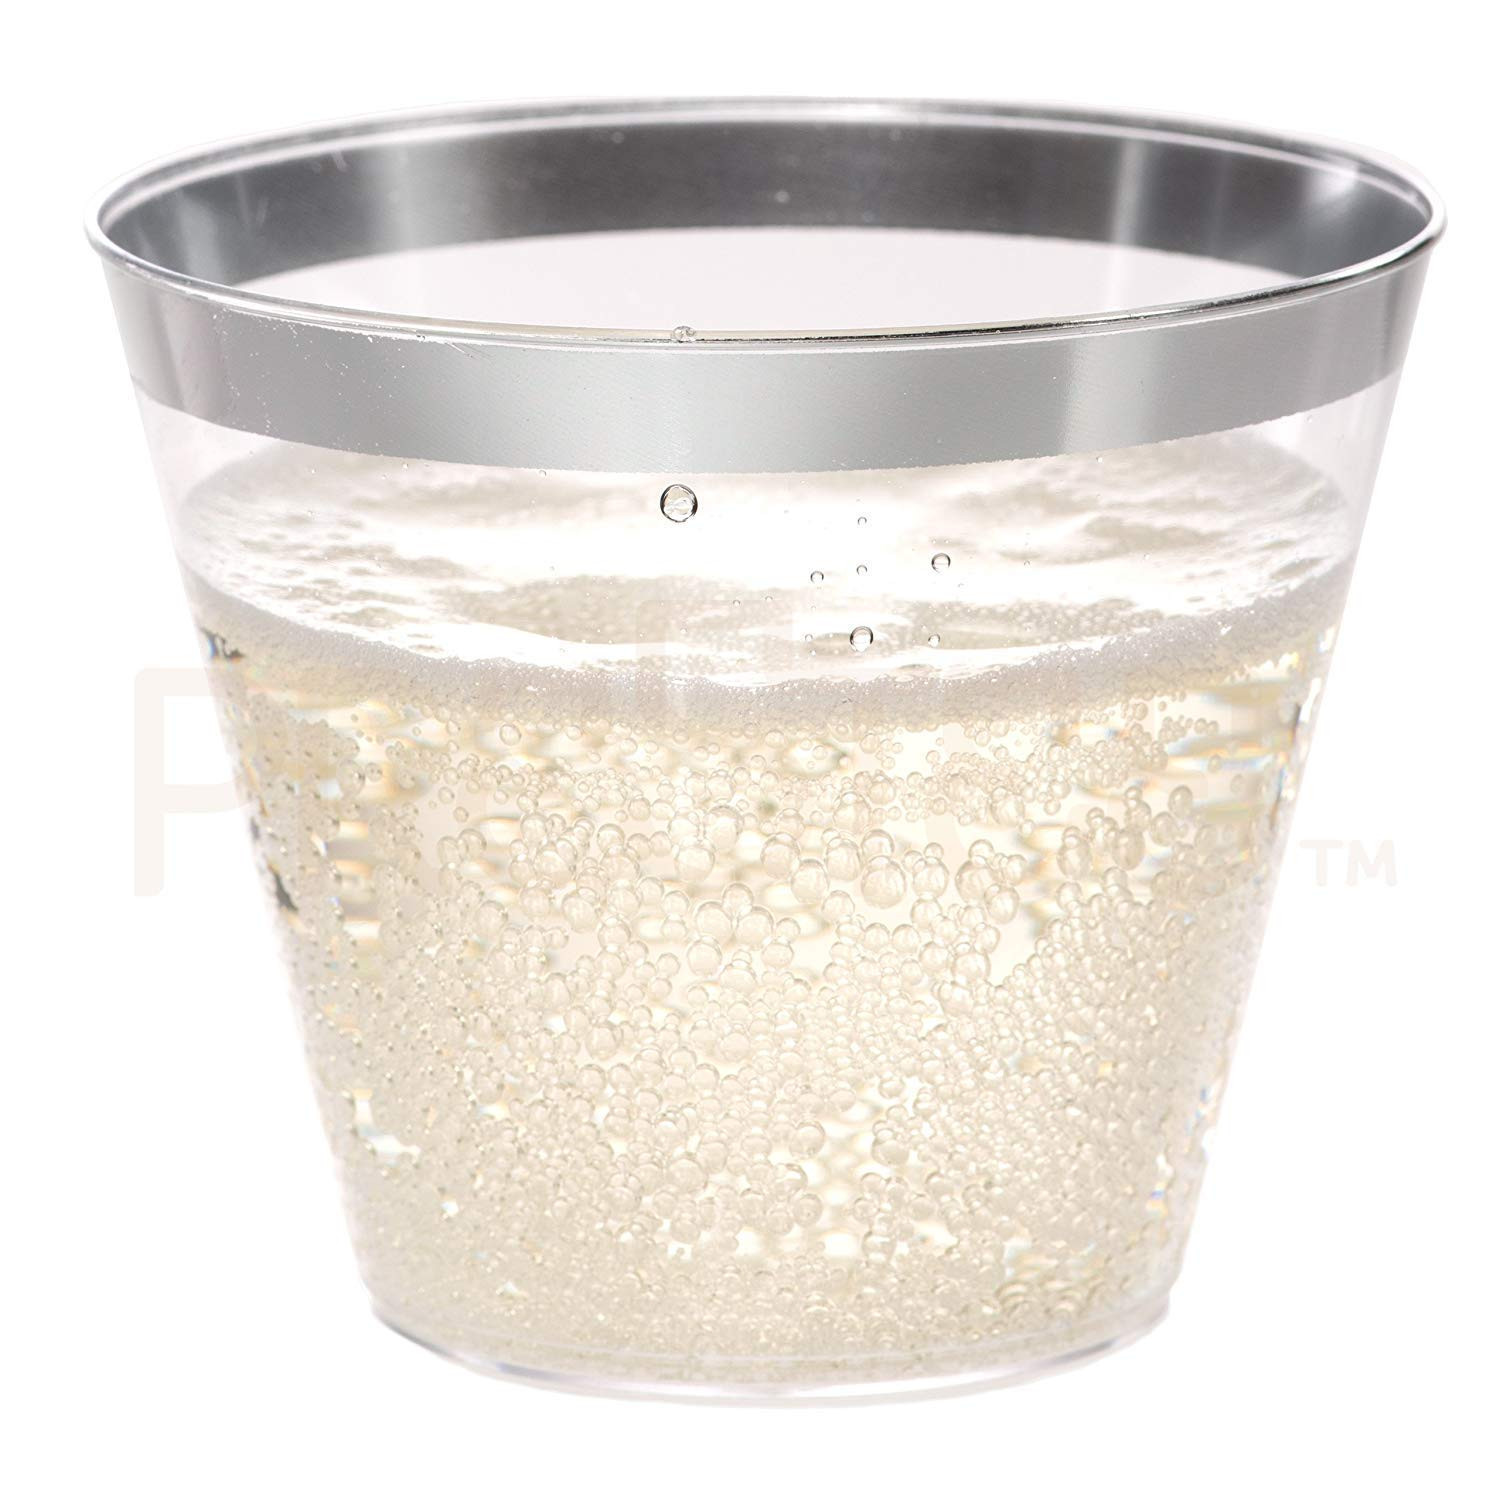 8 inch square glass vase of amazon com silver plastic cups 5 oz 100 pack hard clear pertaining to amazon com silver plastic cups 5 oz 100 pack hard clear plastic cups disposable party cups fancy wedding tumblers nice silver rim plastic cups